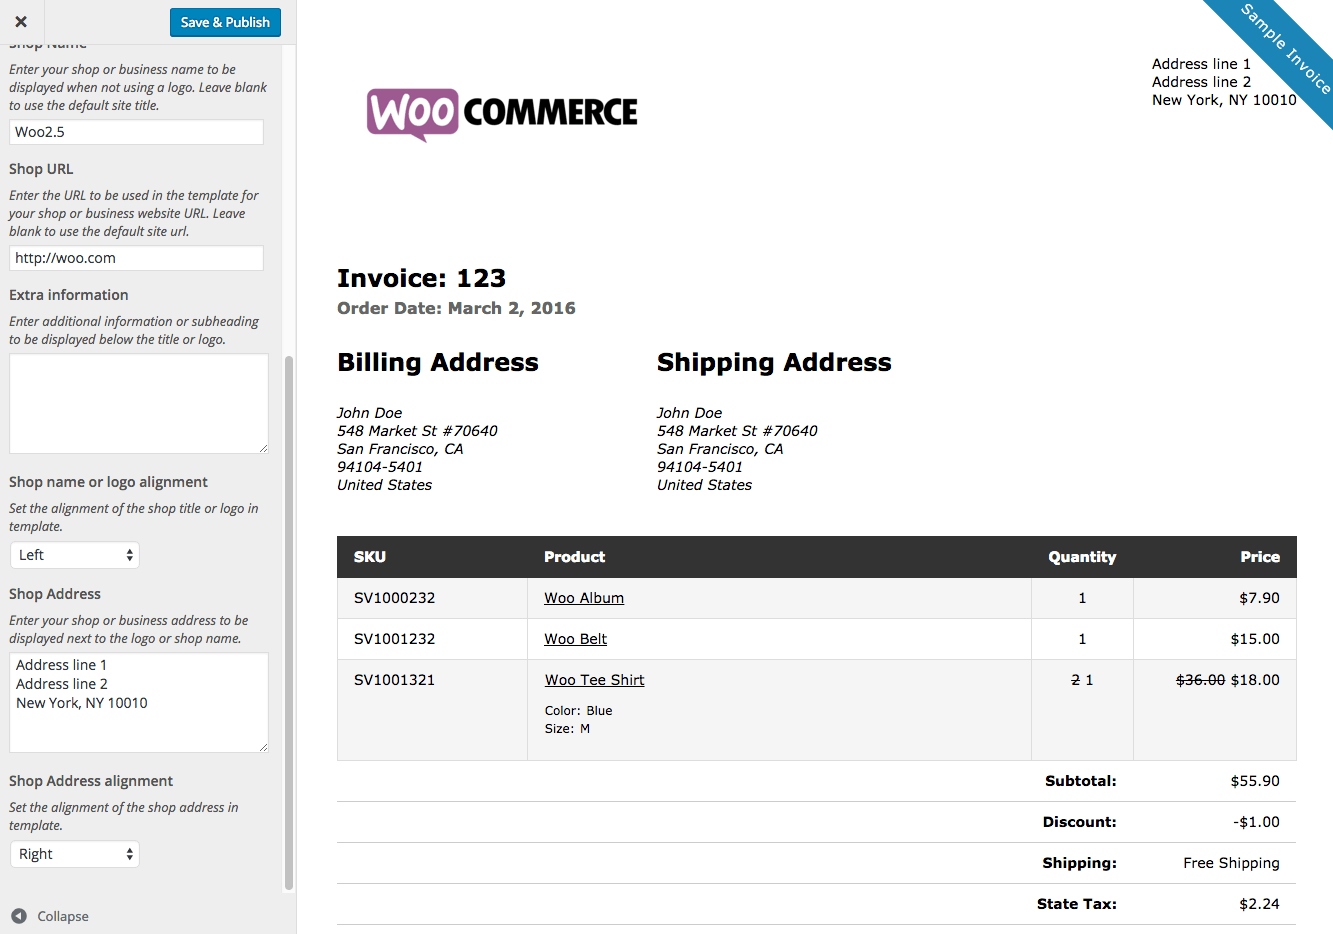 Carsforlessus  Fascinating Woocommerce Print Invoices Amp Packing Lists  Woocommerce Docs With Lovely Woocommerce Print Invoices  Packing Lists Customizer With Amusing Examples Of Rent Receipts Also Child Care Tax Receipt Template In Addition Cash Receipt Journal Entry And How To Write A Receipt Of Sale As Well As Receipt For Charitable Donation Additionally Free Online Receipts From Docswoocommercecom With Carsforlessus  Lovely Woocommerce Print Invoices Amp Packing Lists  Woocommerce Docs With Amusing Woocommerce Print Invoices  Packing Lists Customizer And Fascinating Examples Of Rent Receipts Also Child Care Tax Receipt Template In Addition Cash Receipt Journal Entry From Docswoocommercecom